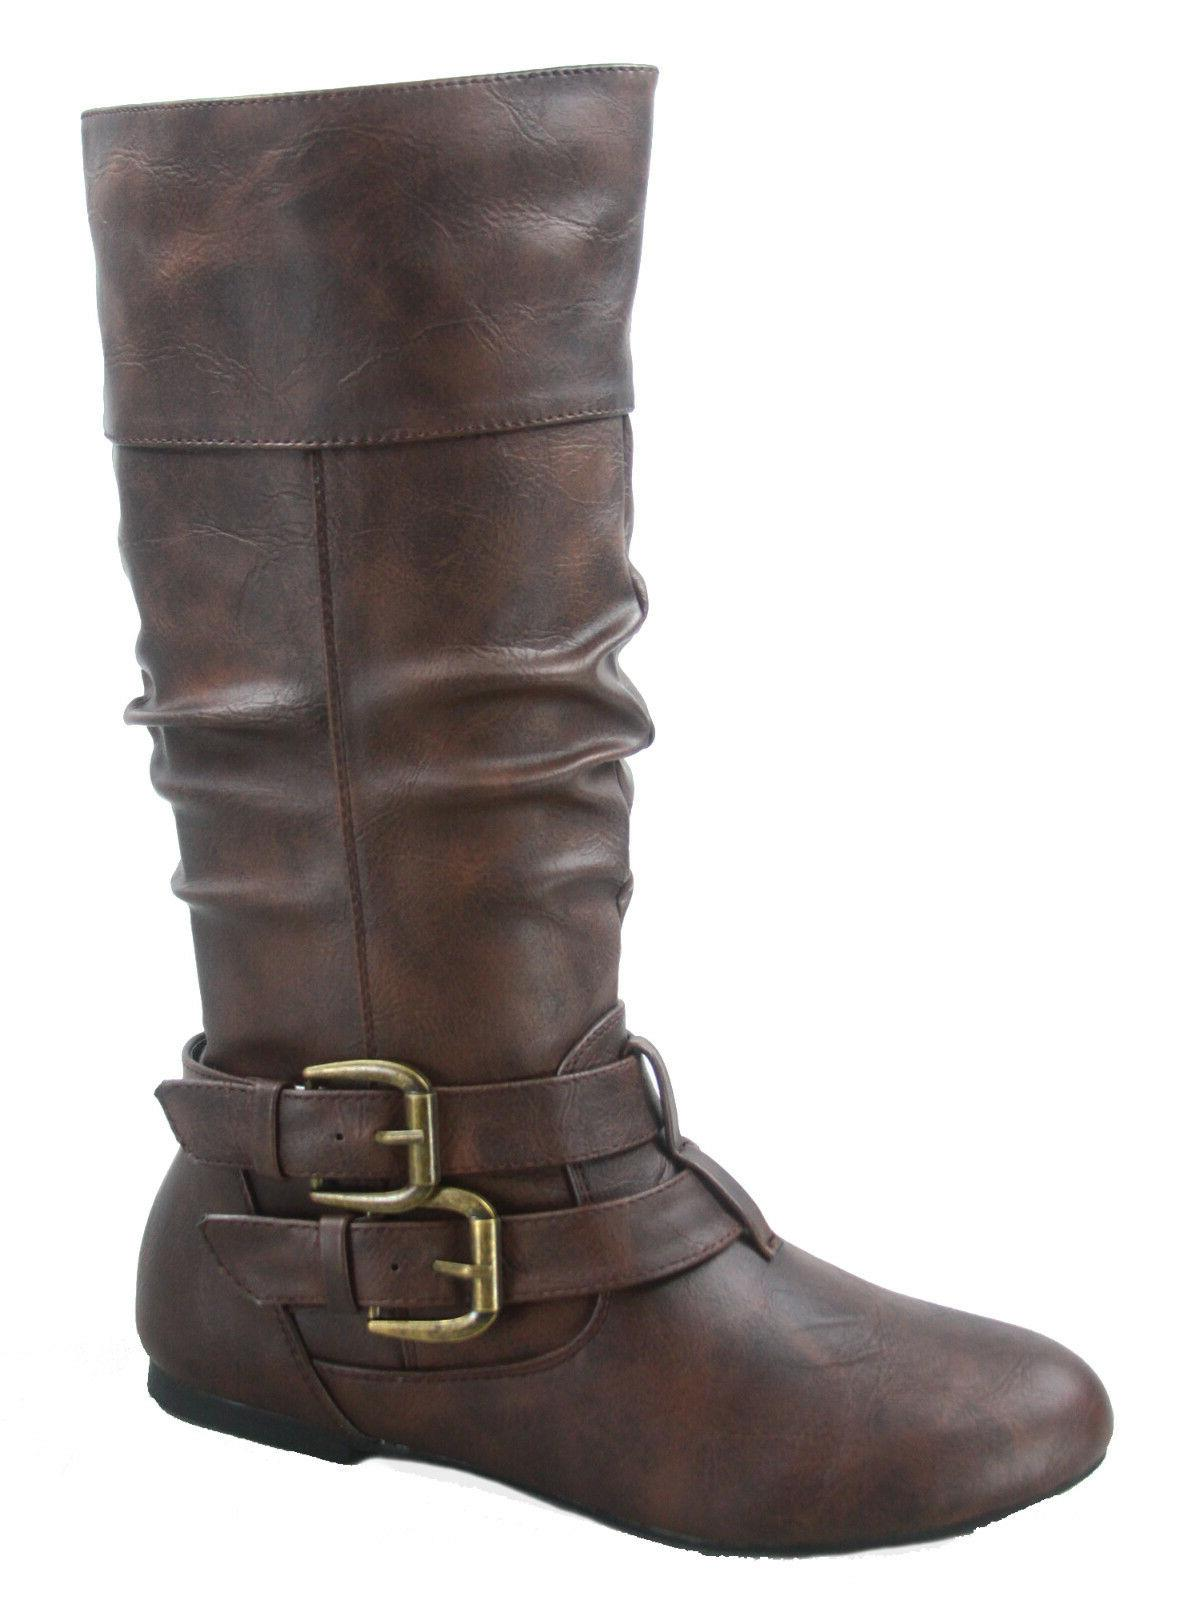 Women's Toe Flat Causal Mid Buckle Boots Shoes 5 11